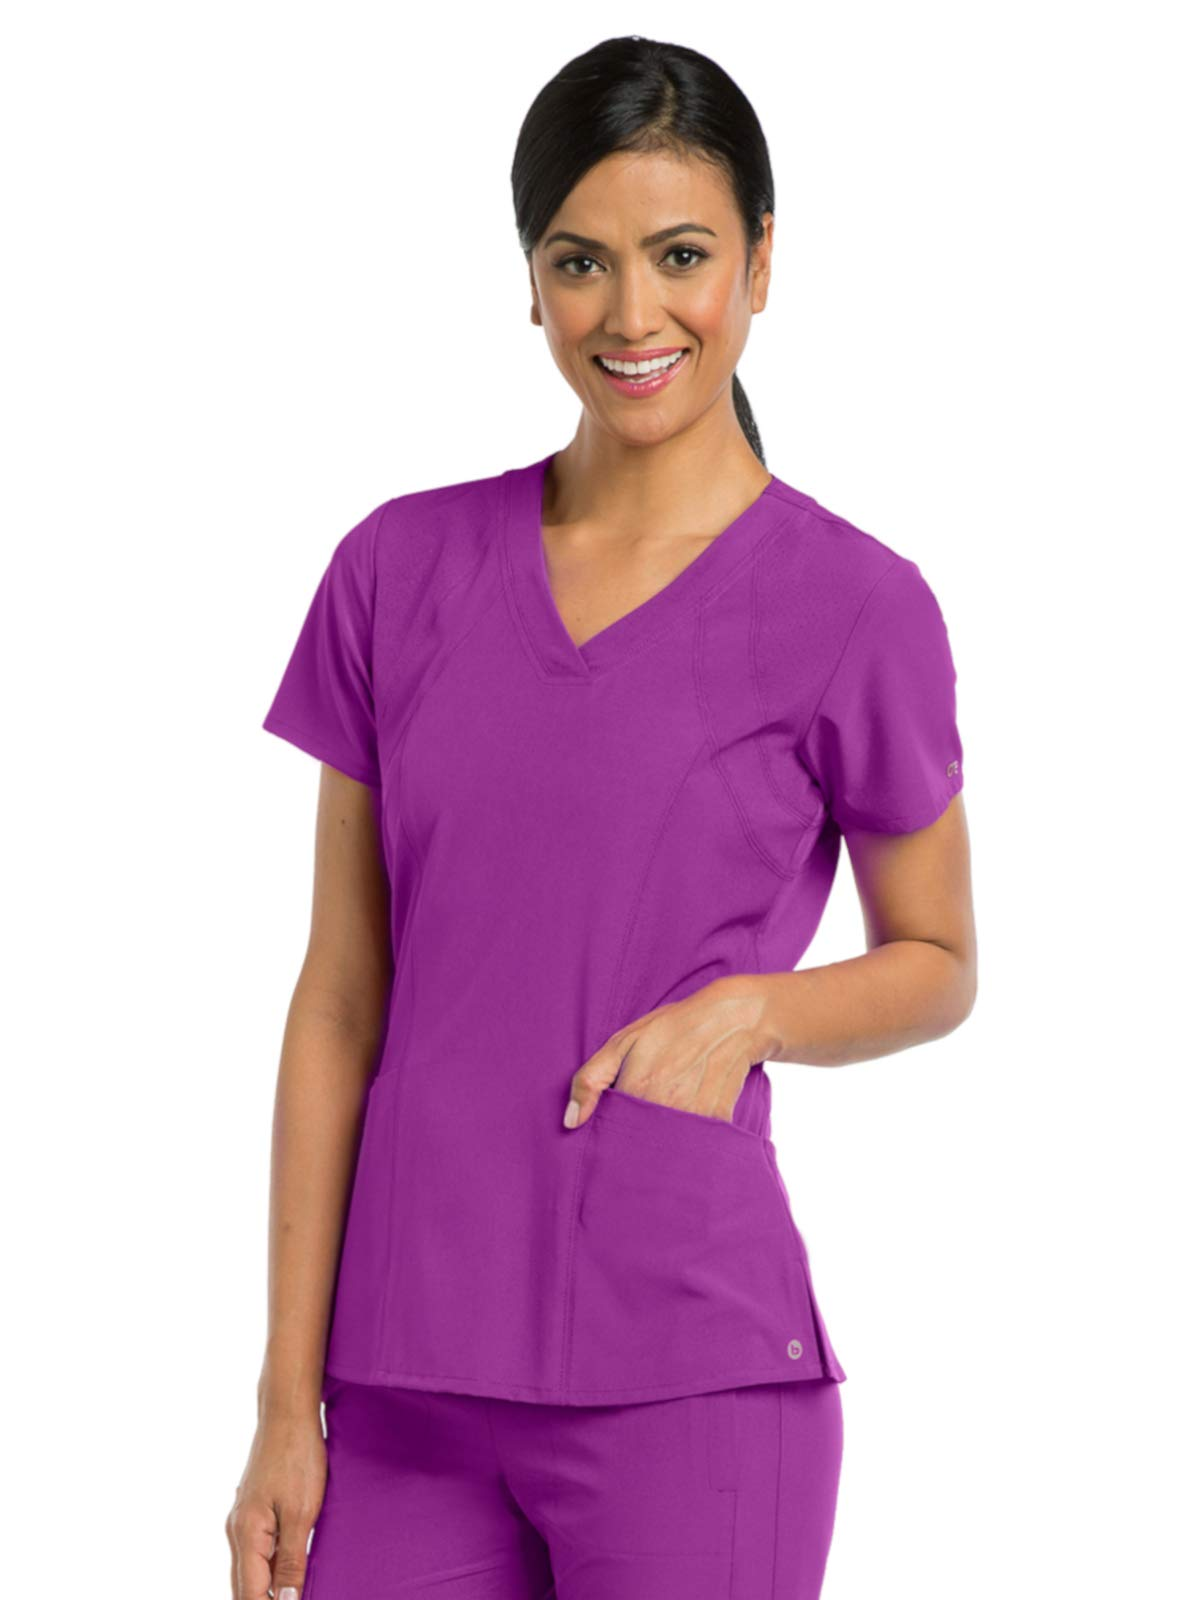 Barco One 5105 Women's V-Neck Top Bright Violet M